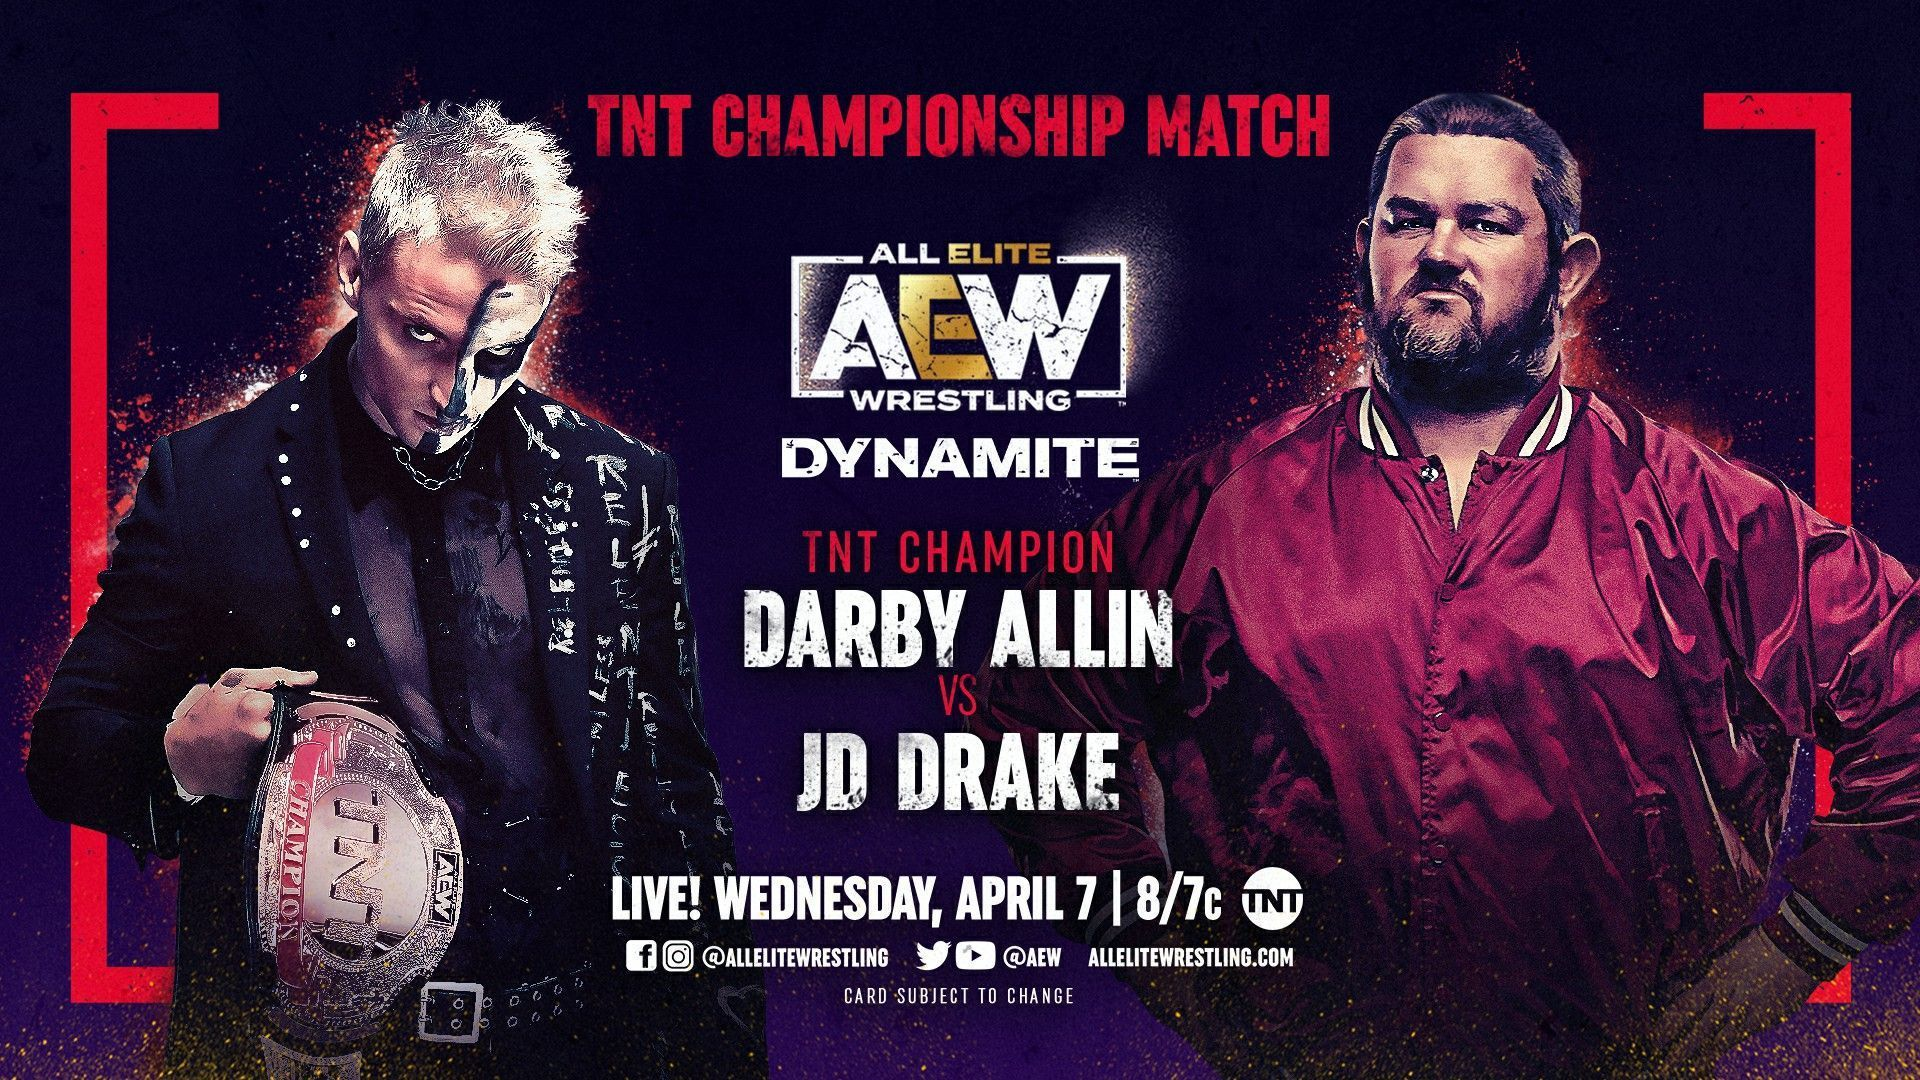 AEW Dynamite IGNITE for 4/7/21 https://pbs.twimg.com/media/EySoNdGWgAIYijt?format=jpg&name=large